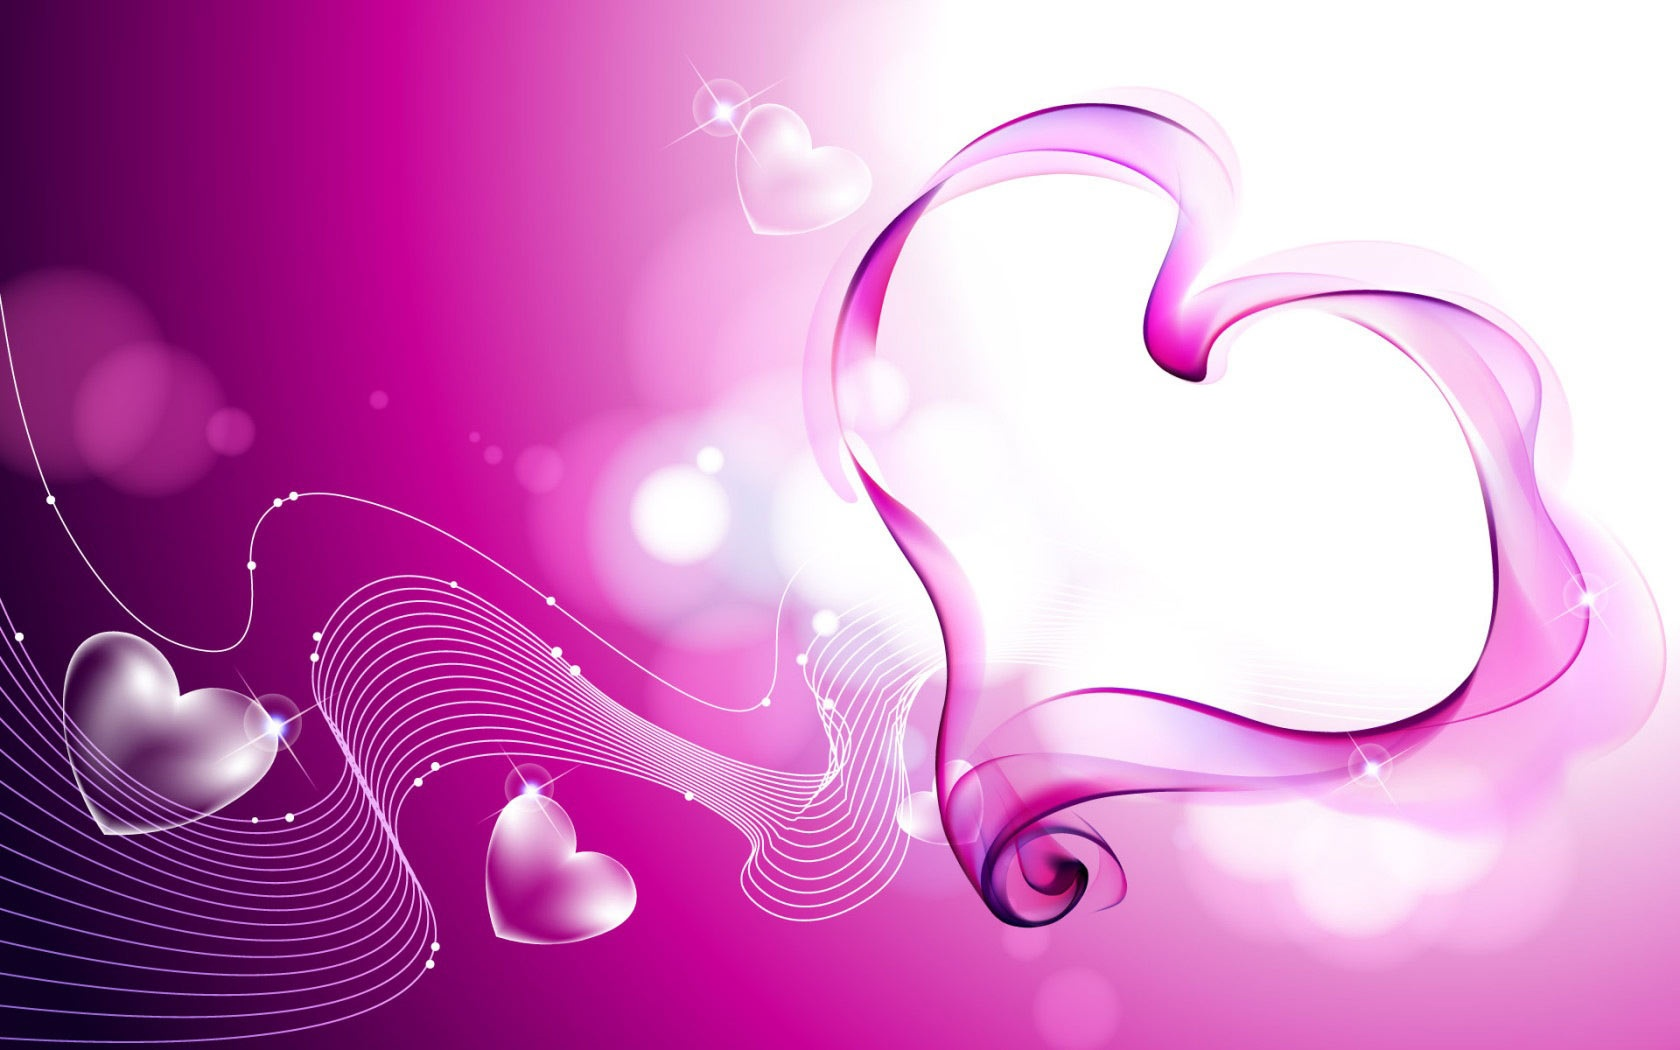 Pink Love Hearts Smoke Wallpapers HD Wallpapers 1680x1050